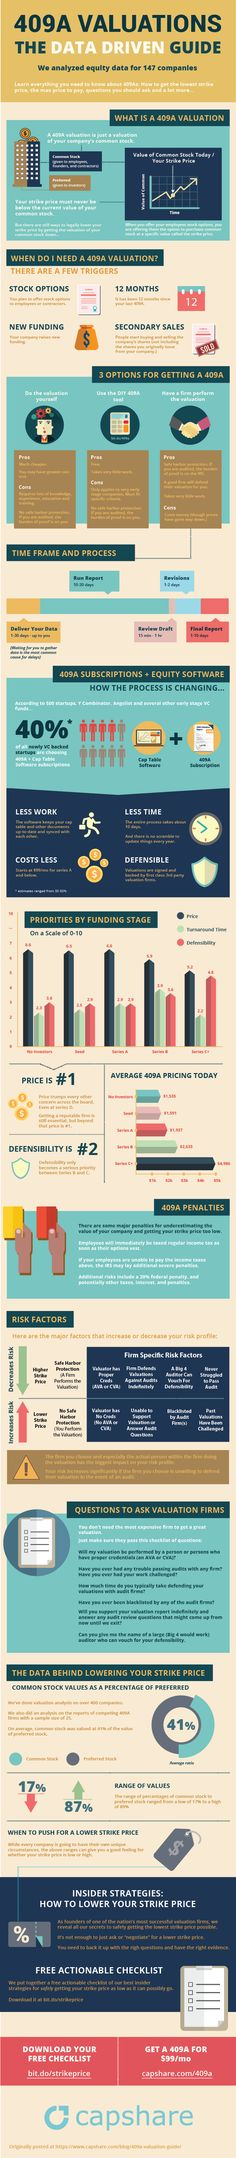 409A Valuations: The Data Driven Guide Infographic